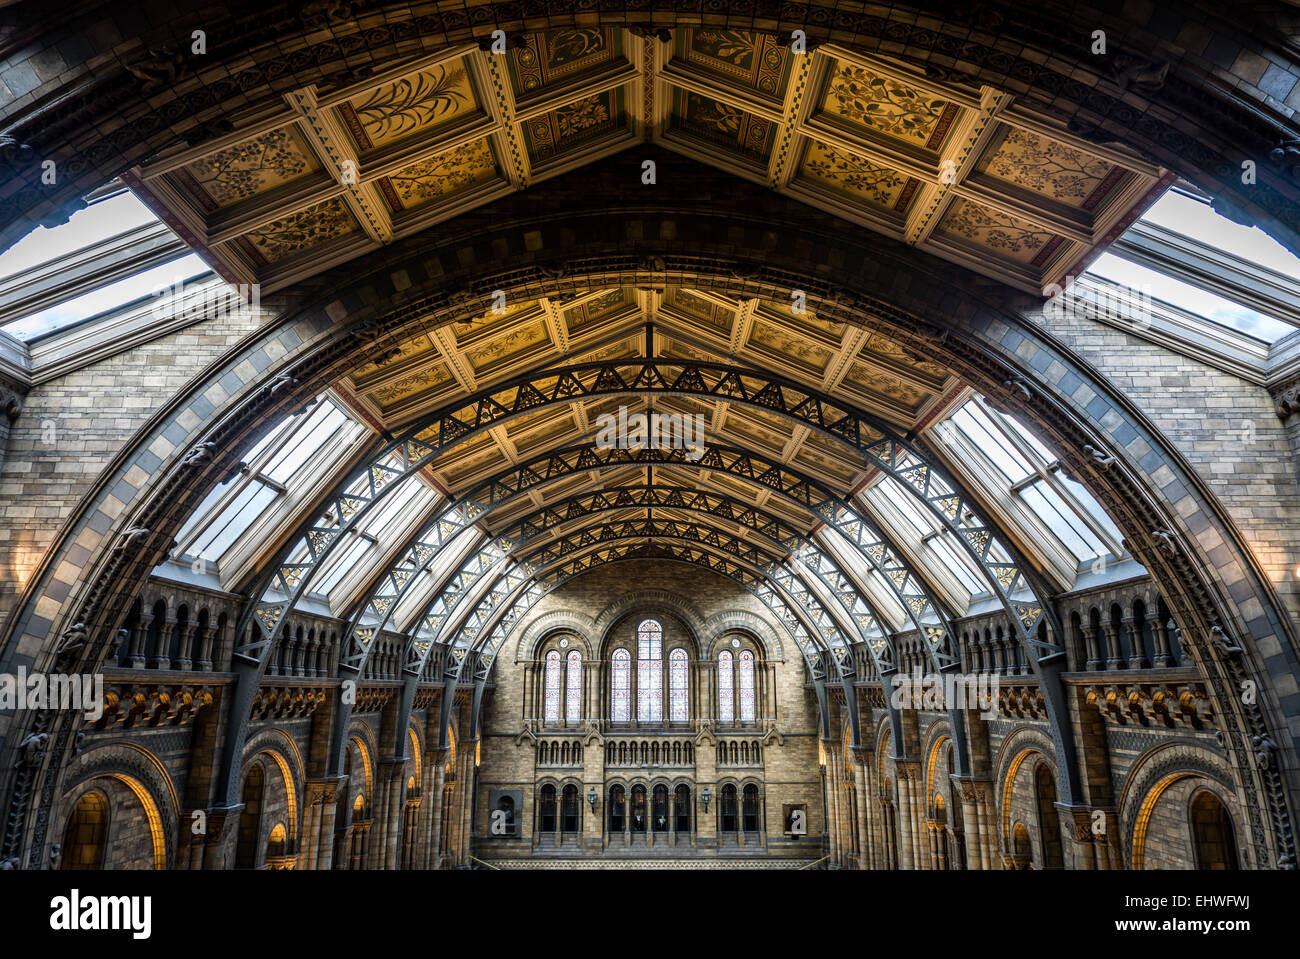 Detail of the roof of the Natural History Museum, London - Stock Image